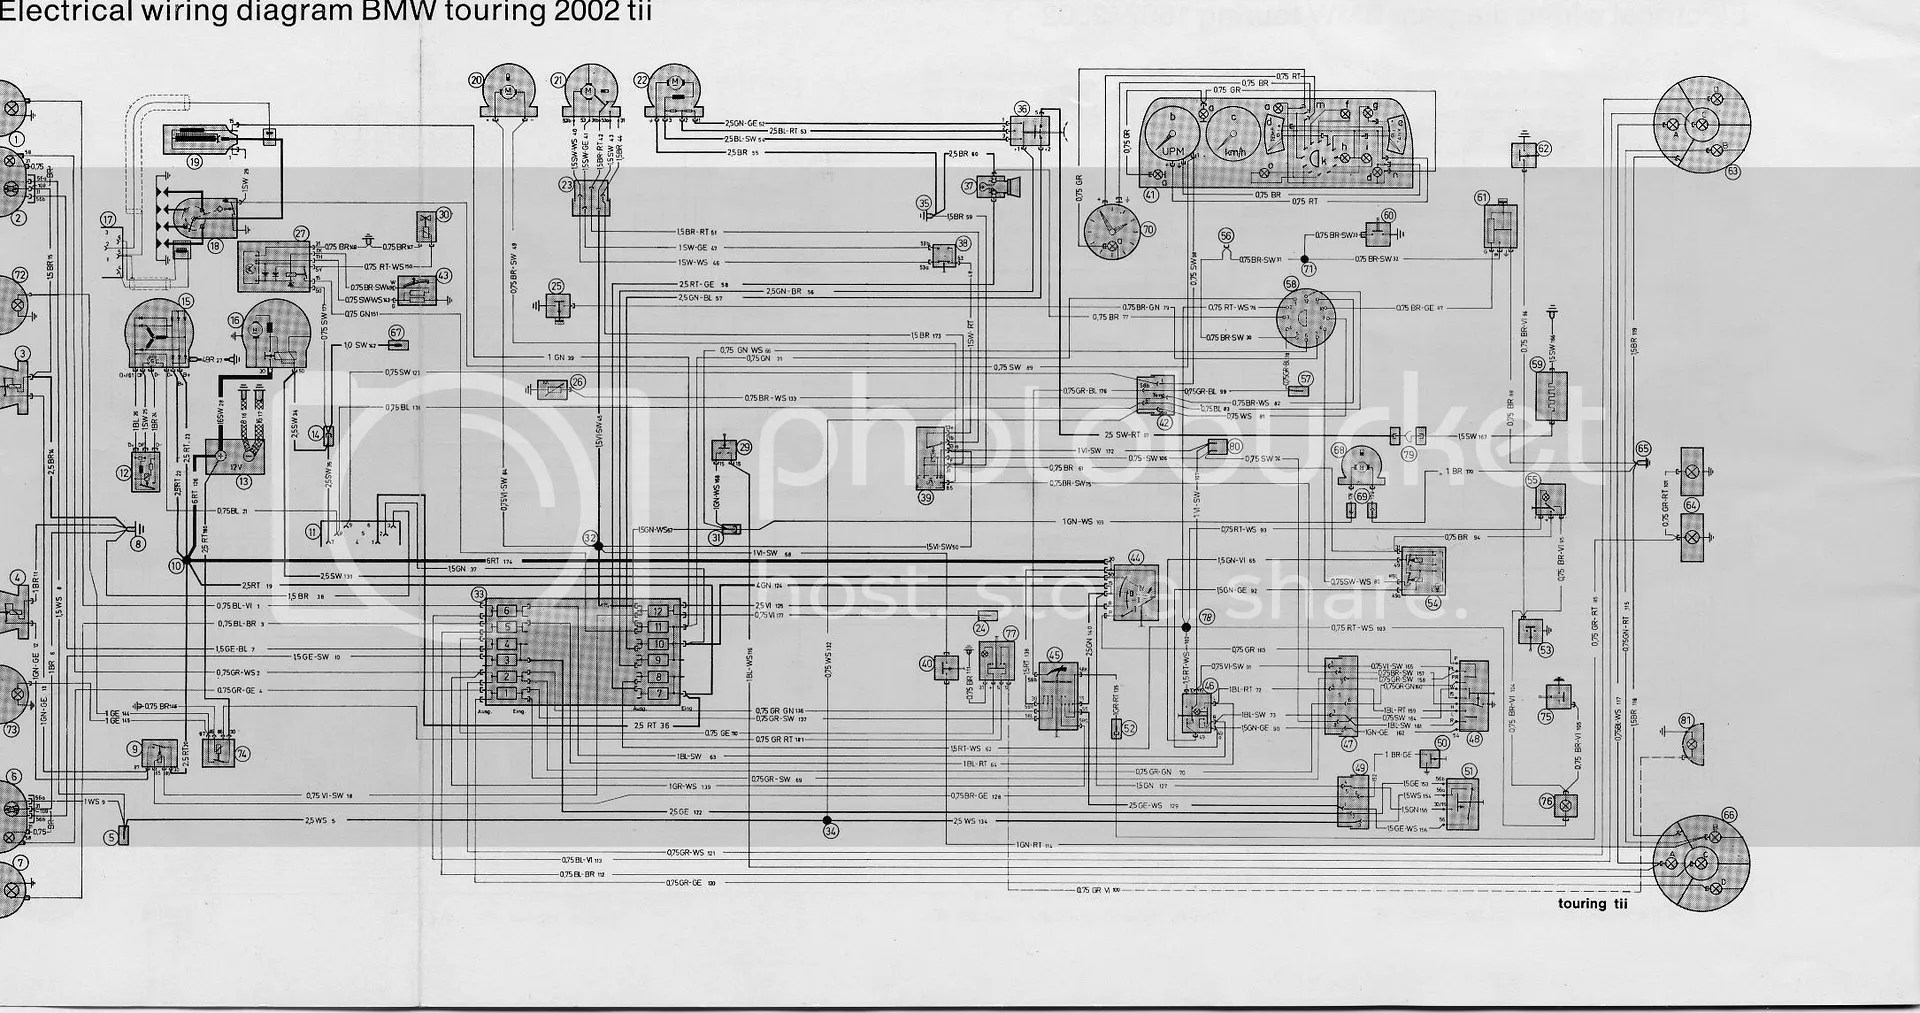 bmw e92 radio wiring diagram interactive venn 2 circles e46 diagrams get free image about